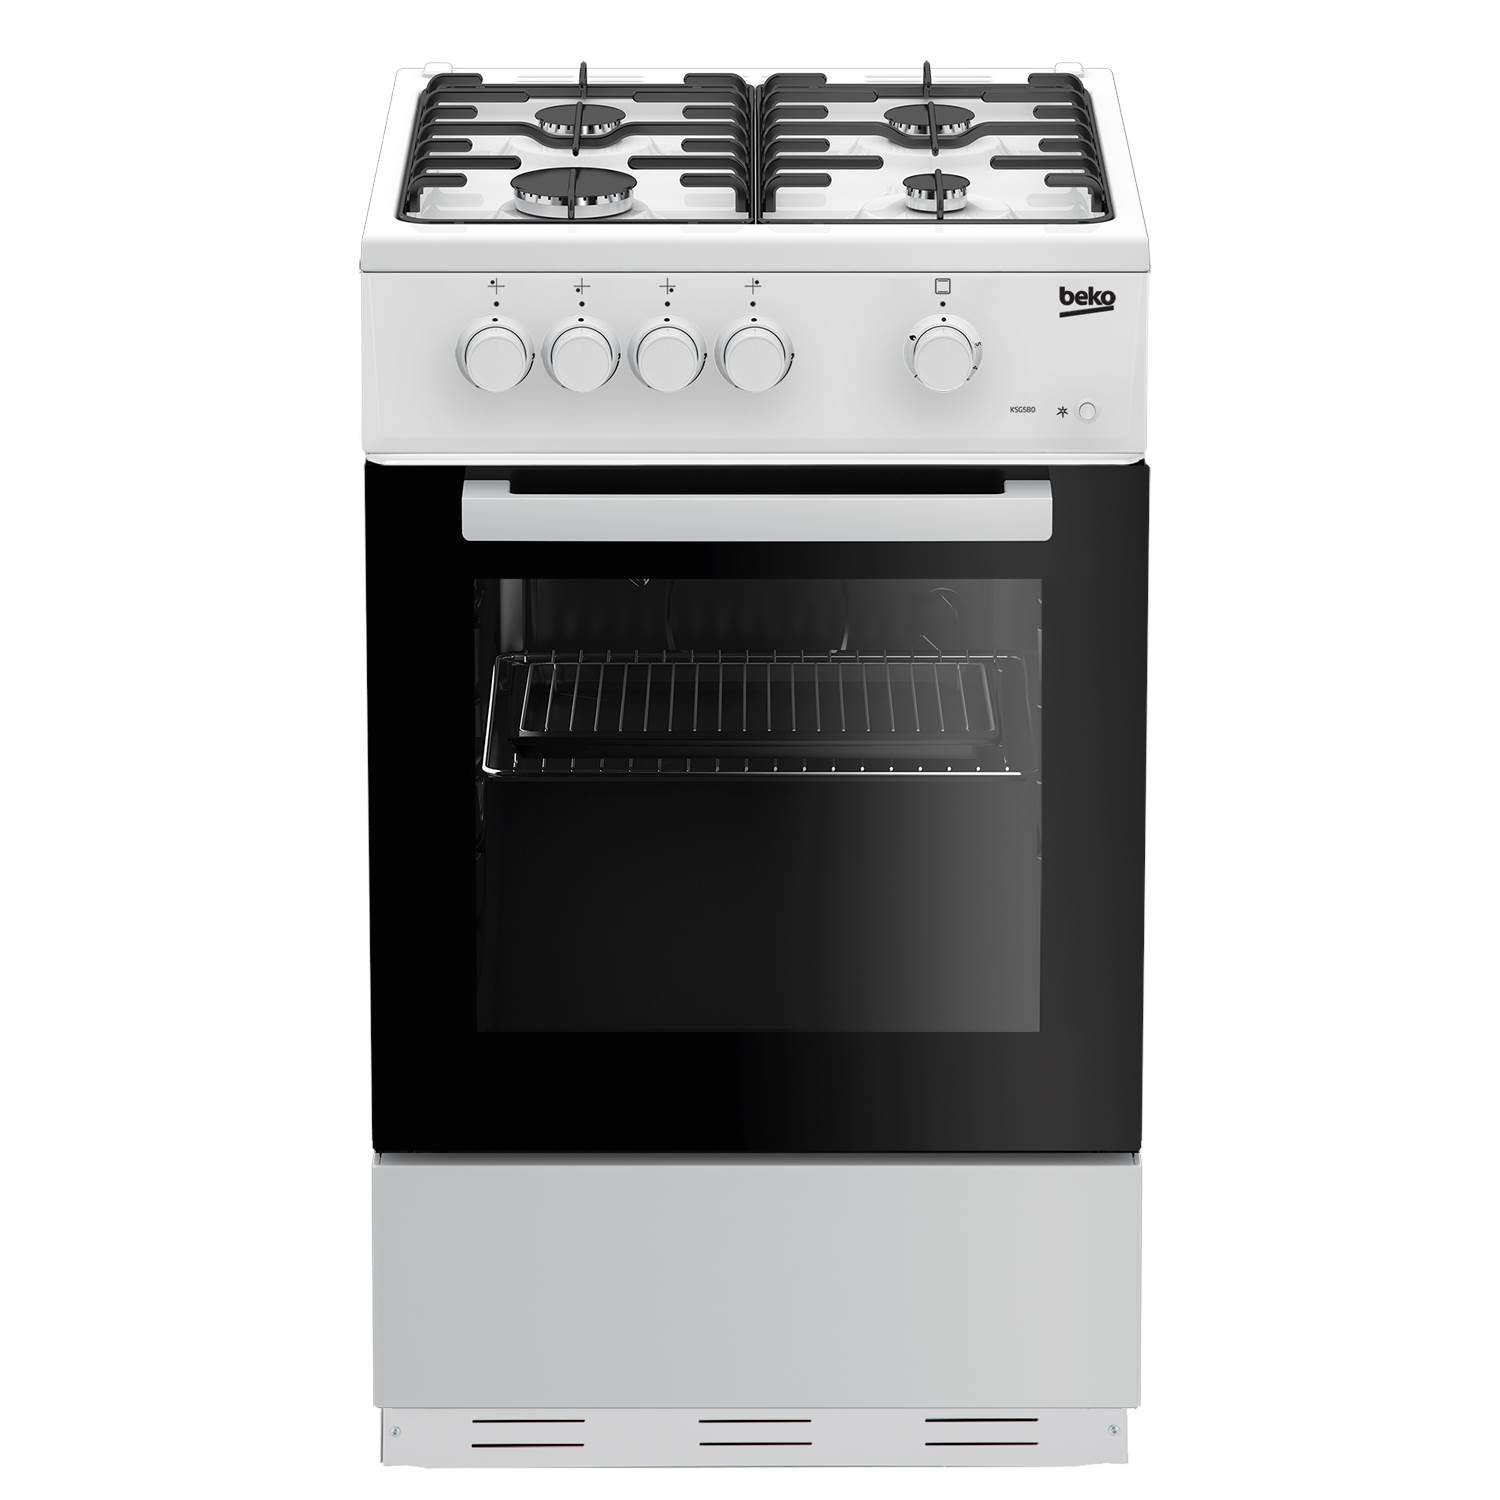 Beko KSG580W 50cm Single Cavity Gas Cooker in White 4 Hotplate Burners